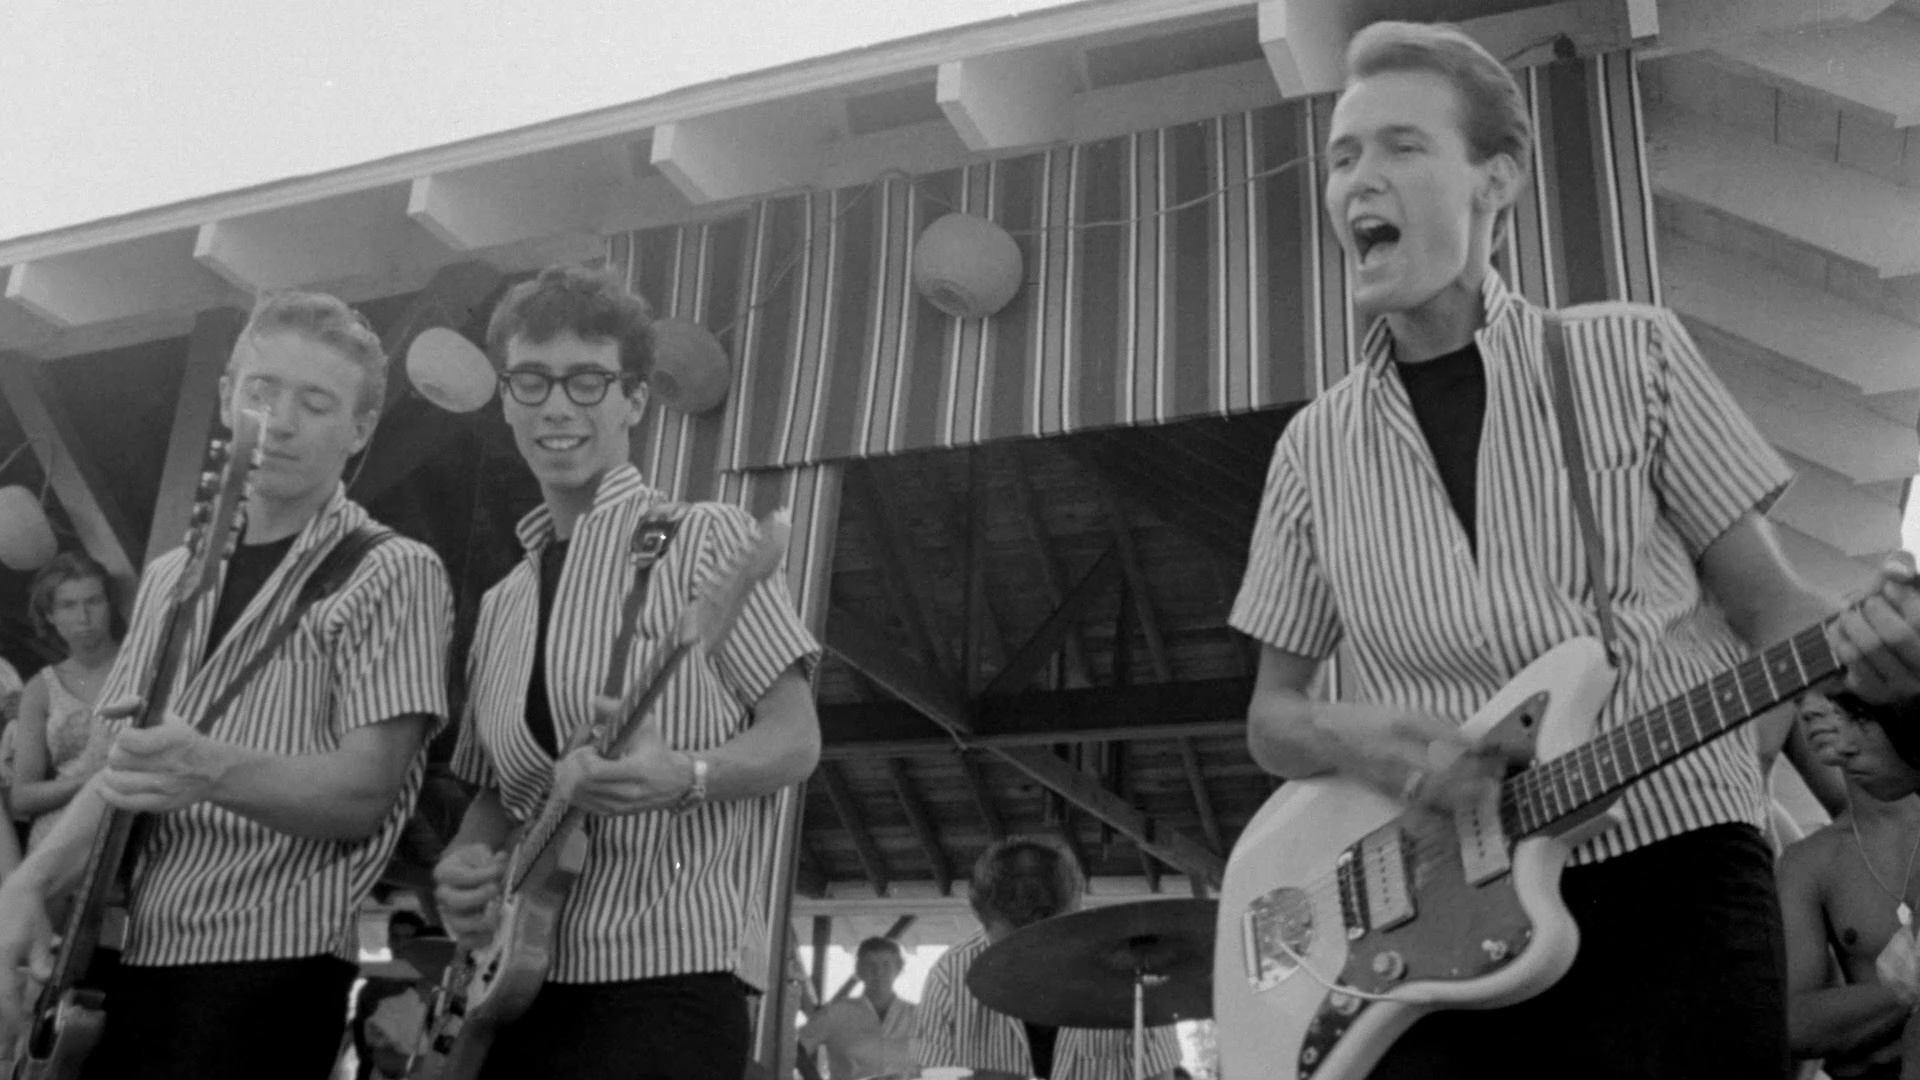 The entirely forgotten rock'n'roll band The Del-Aires in The Horror of Party Beach (1964)